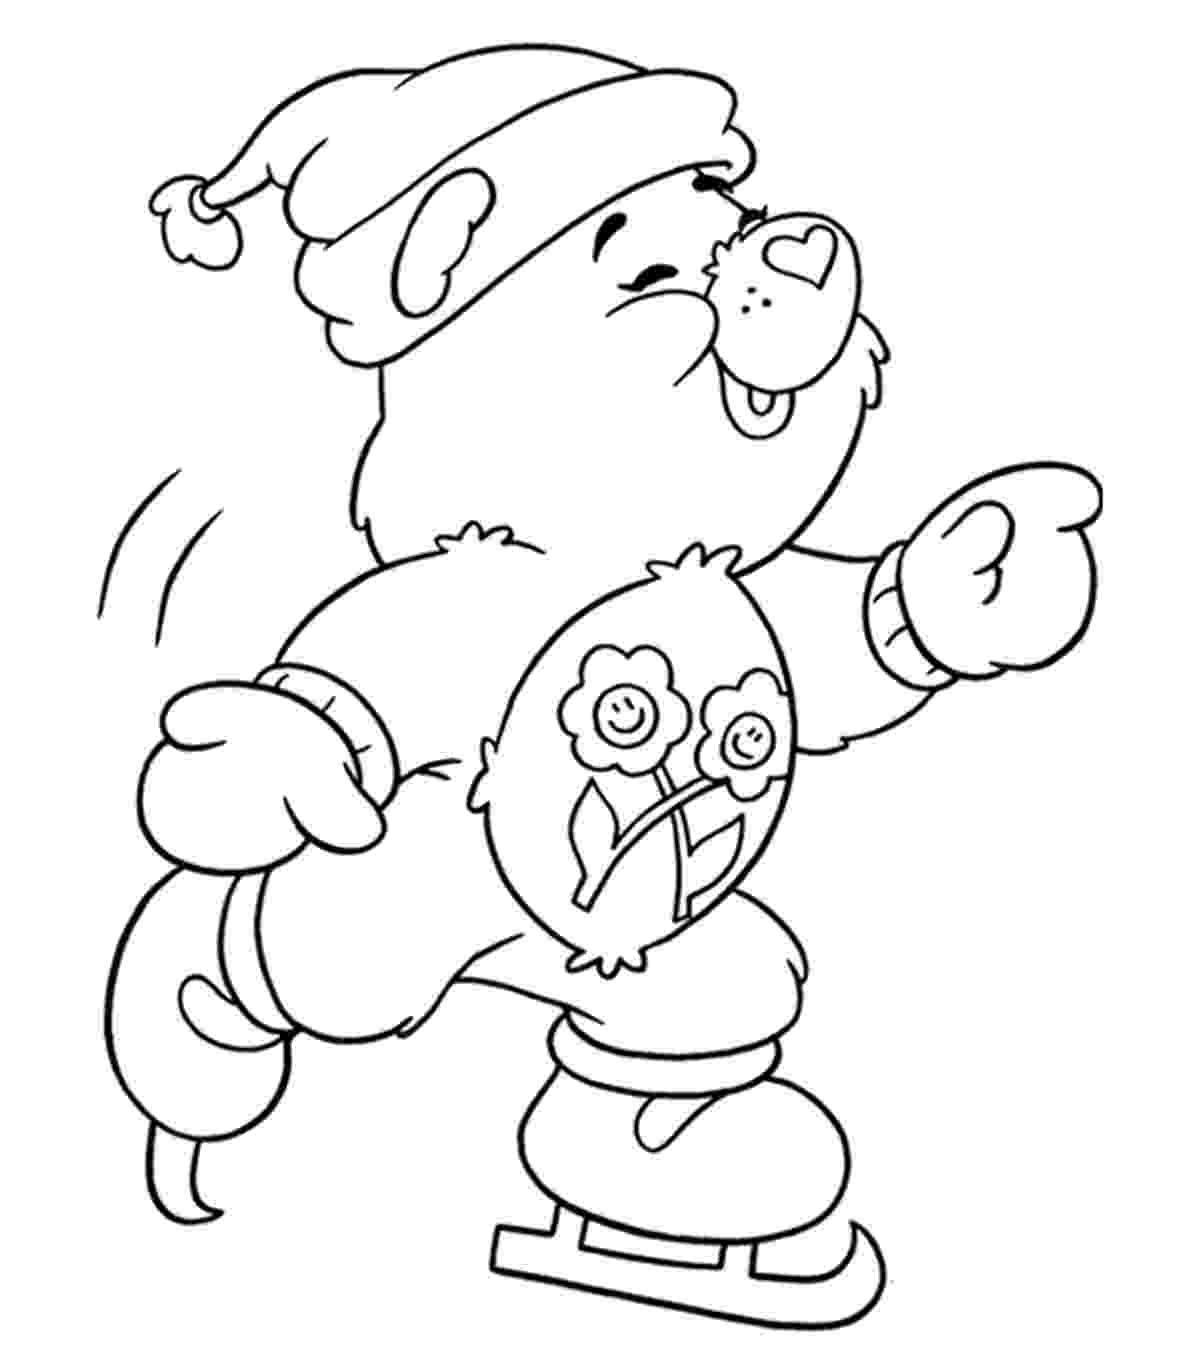 colouring sheets winter winter coloring pages 360coloringpages colouring sheets winter